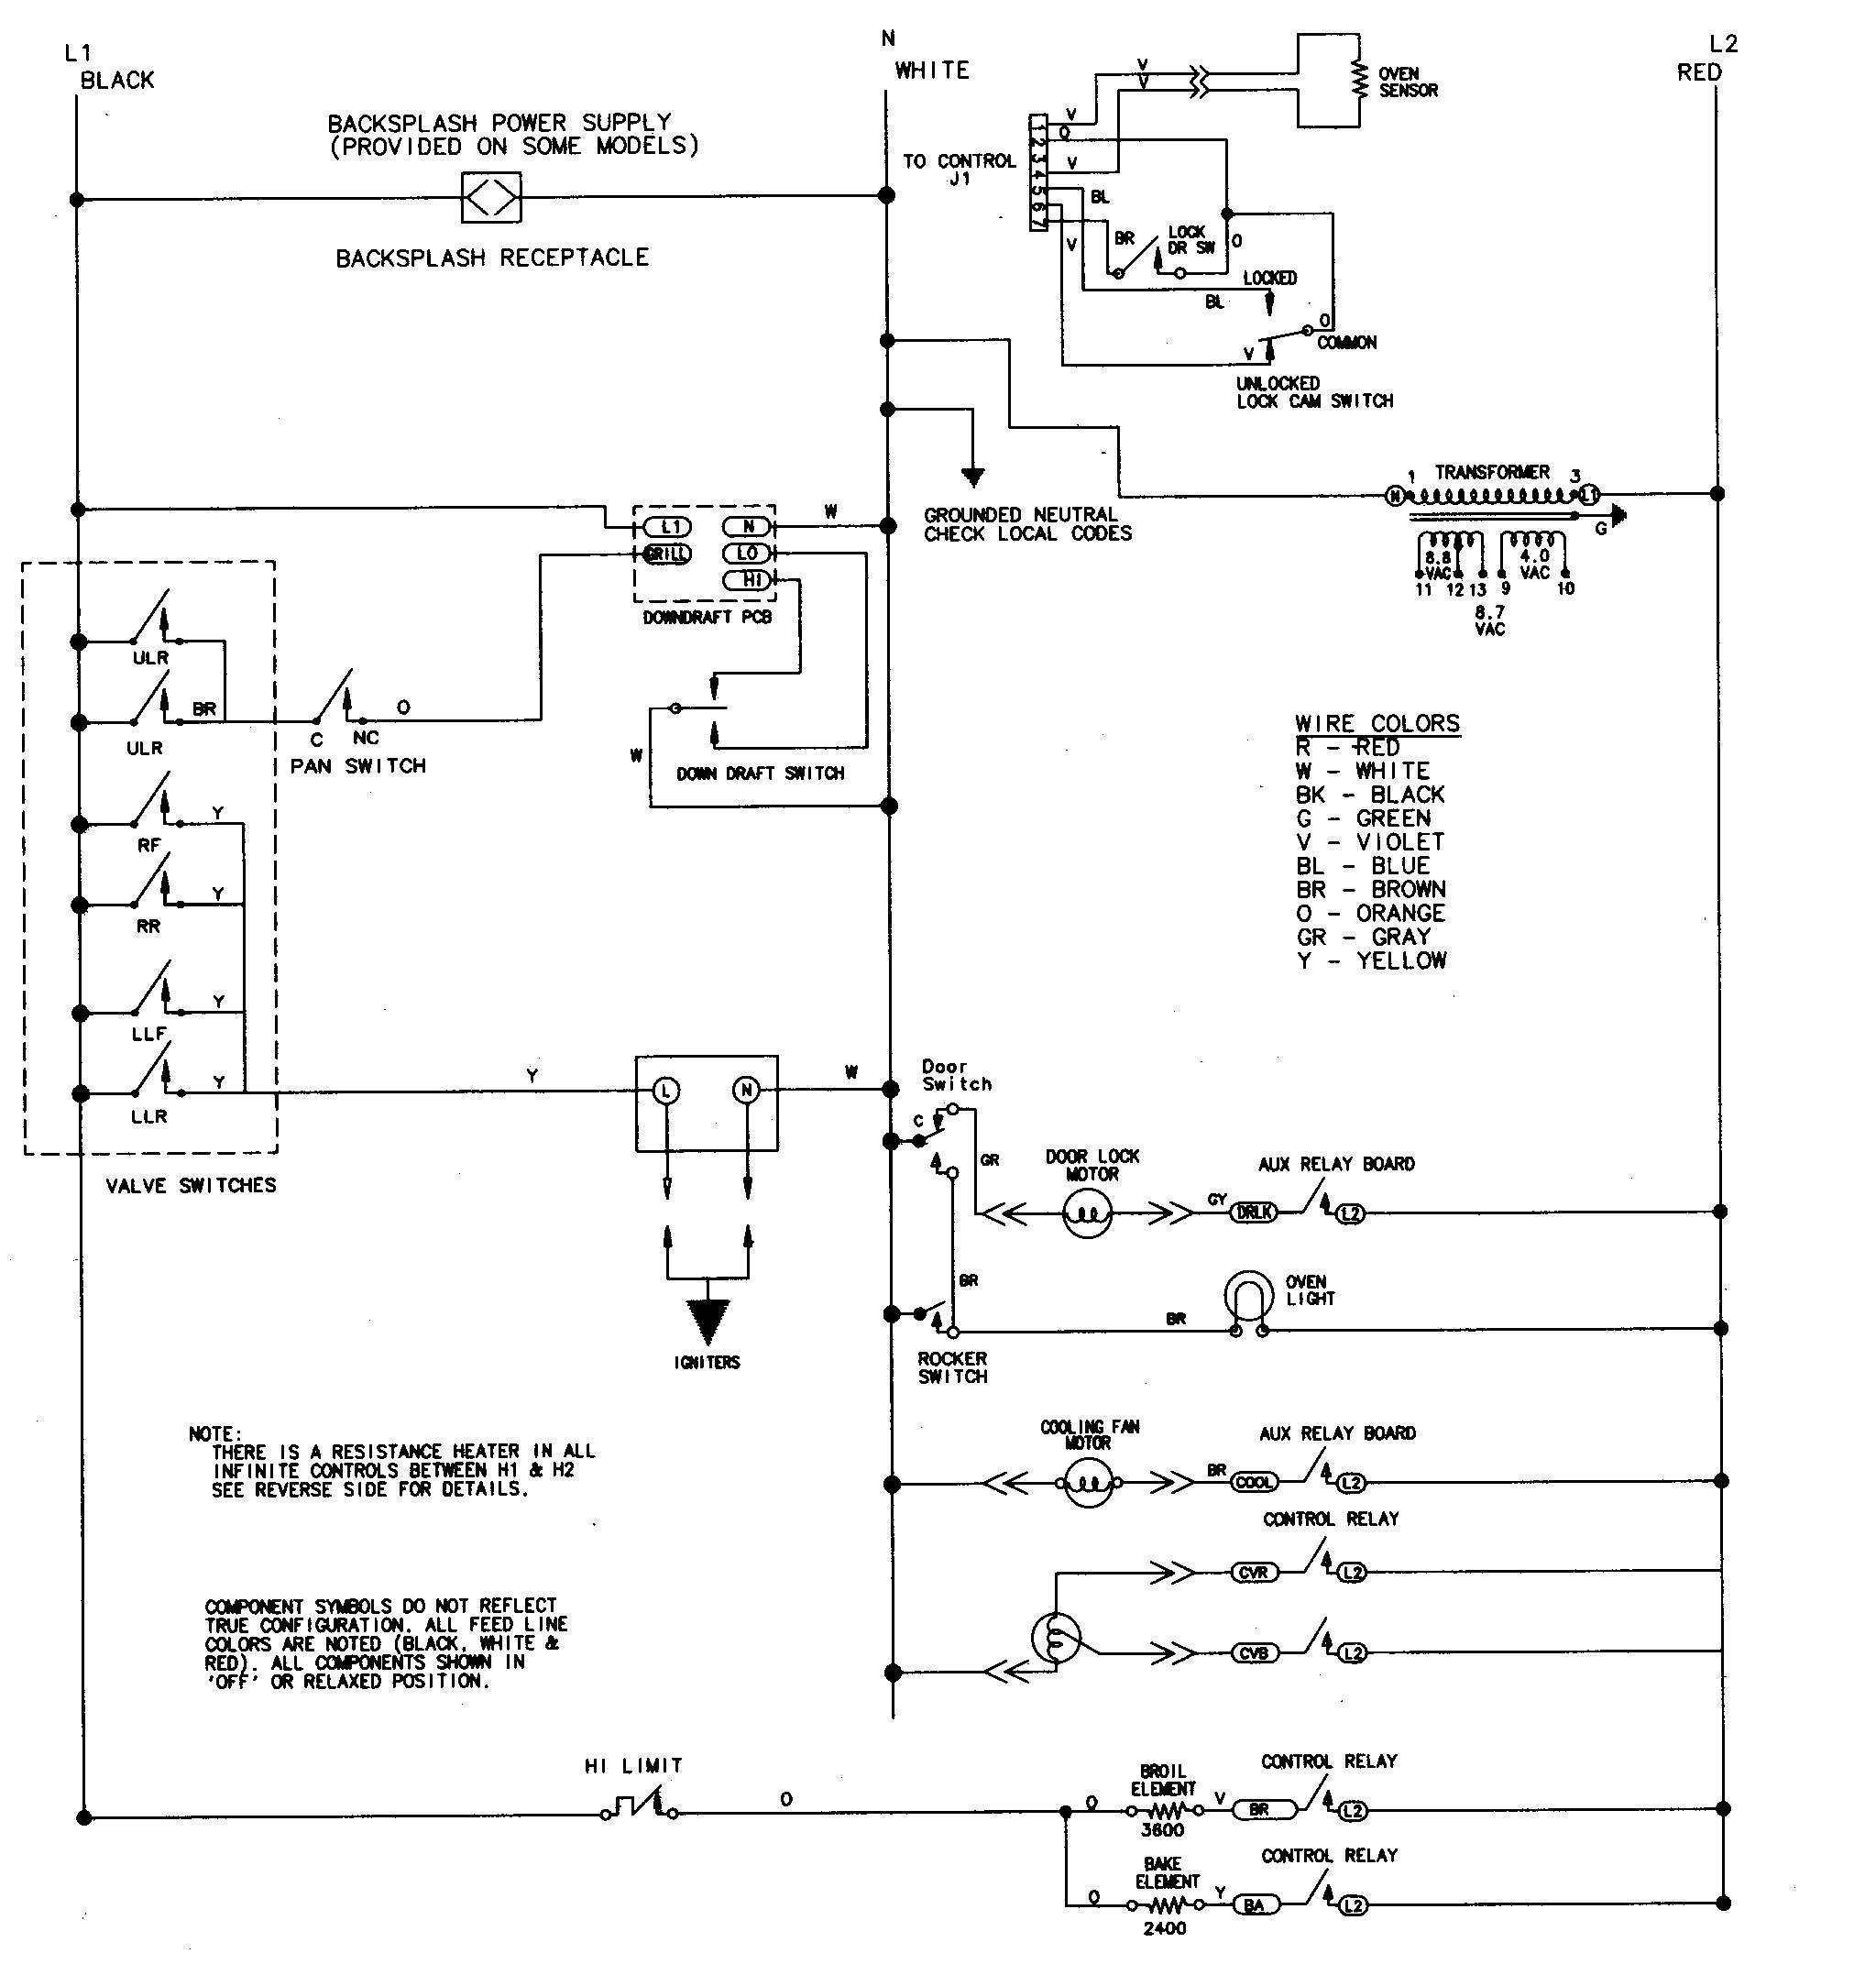 Electric stove outlet wiring diagram wiring diagram image 3 wire stove plug wiring diagram elegant famous basic oven wiring diagram electrical circuit asfbconference2016 Gallery